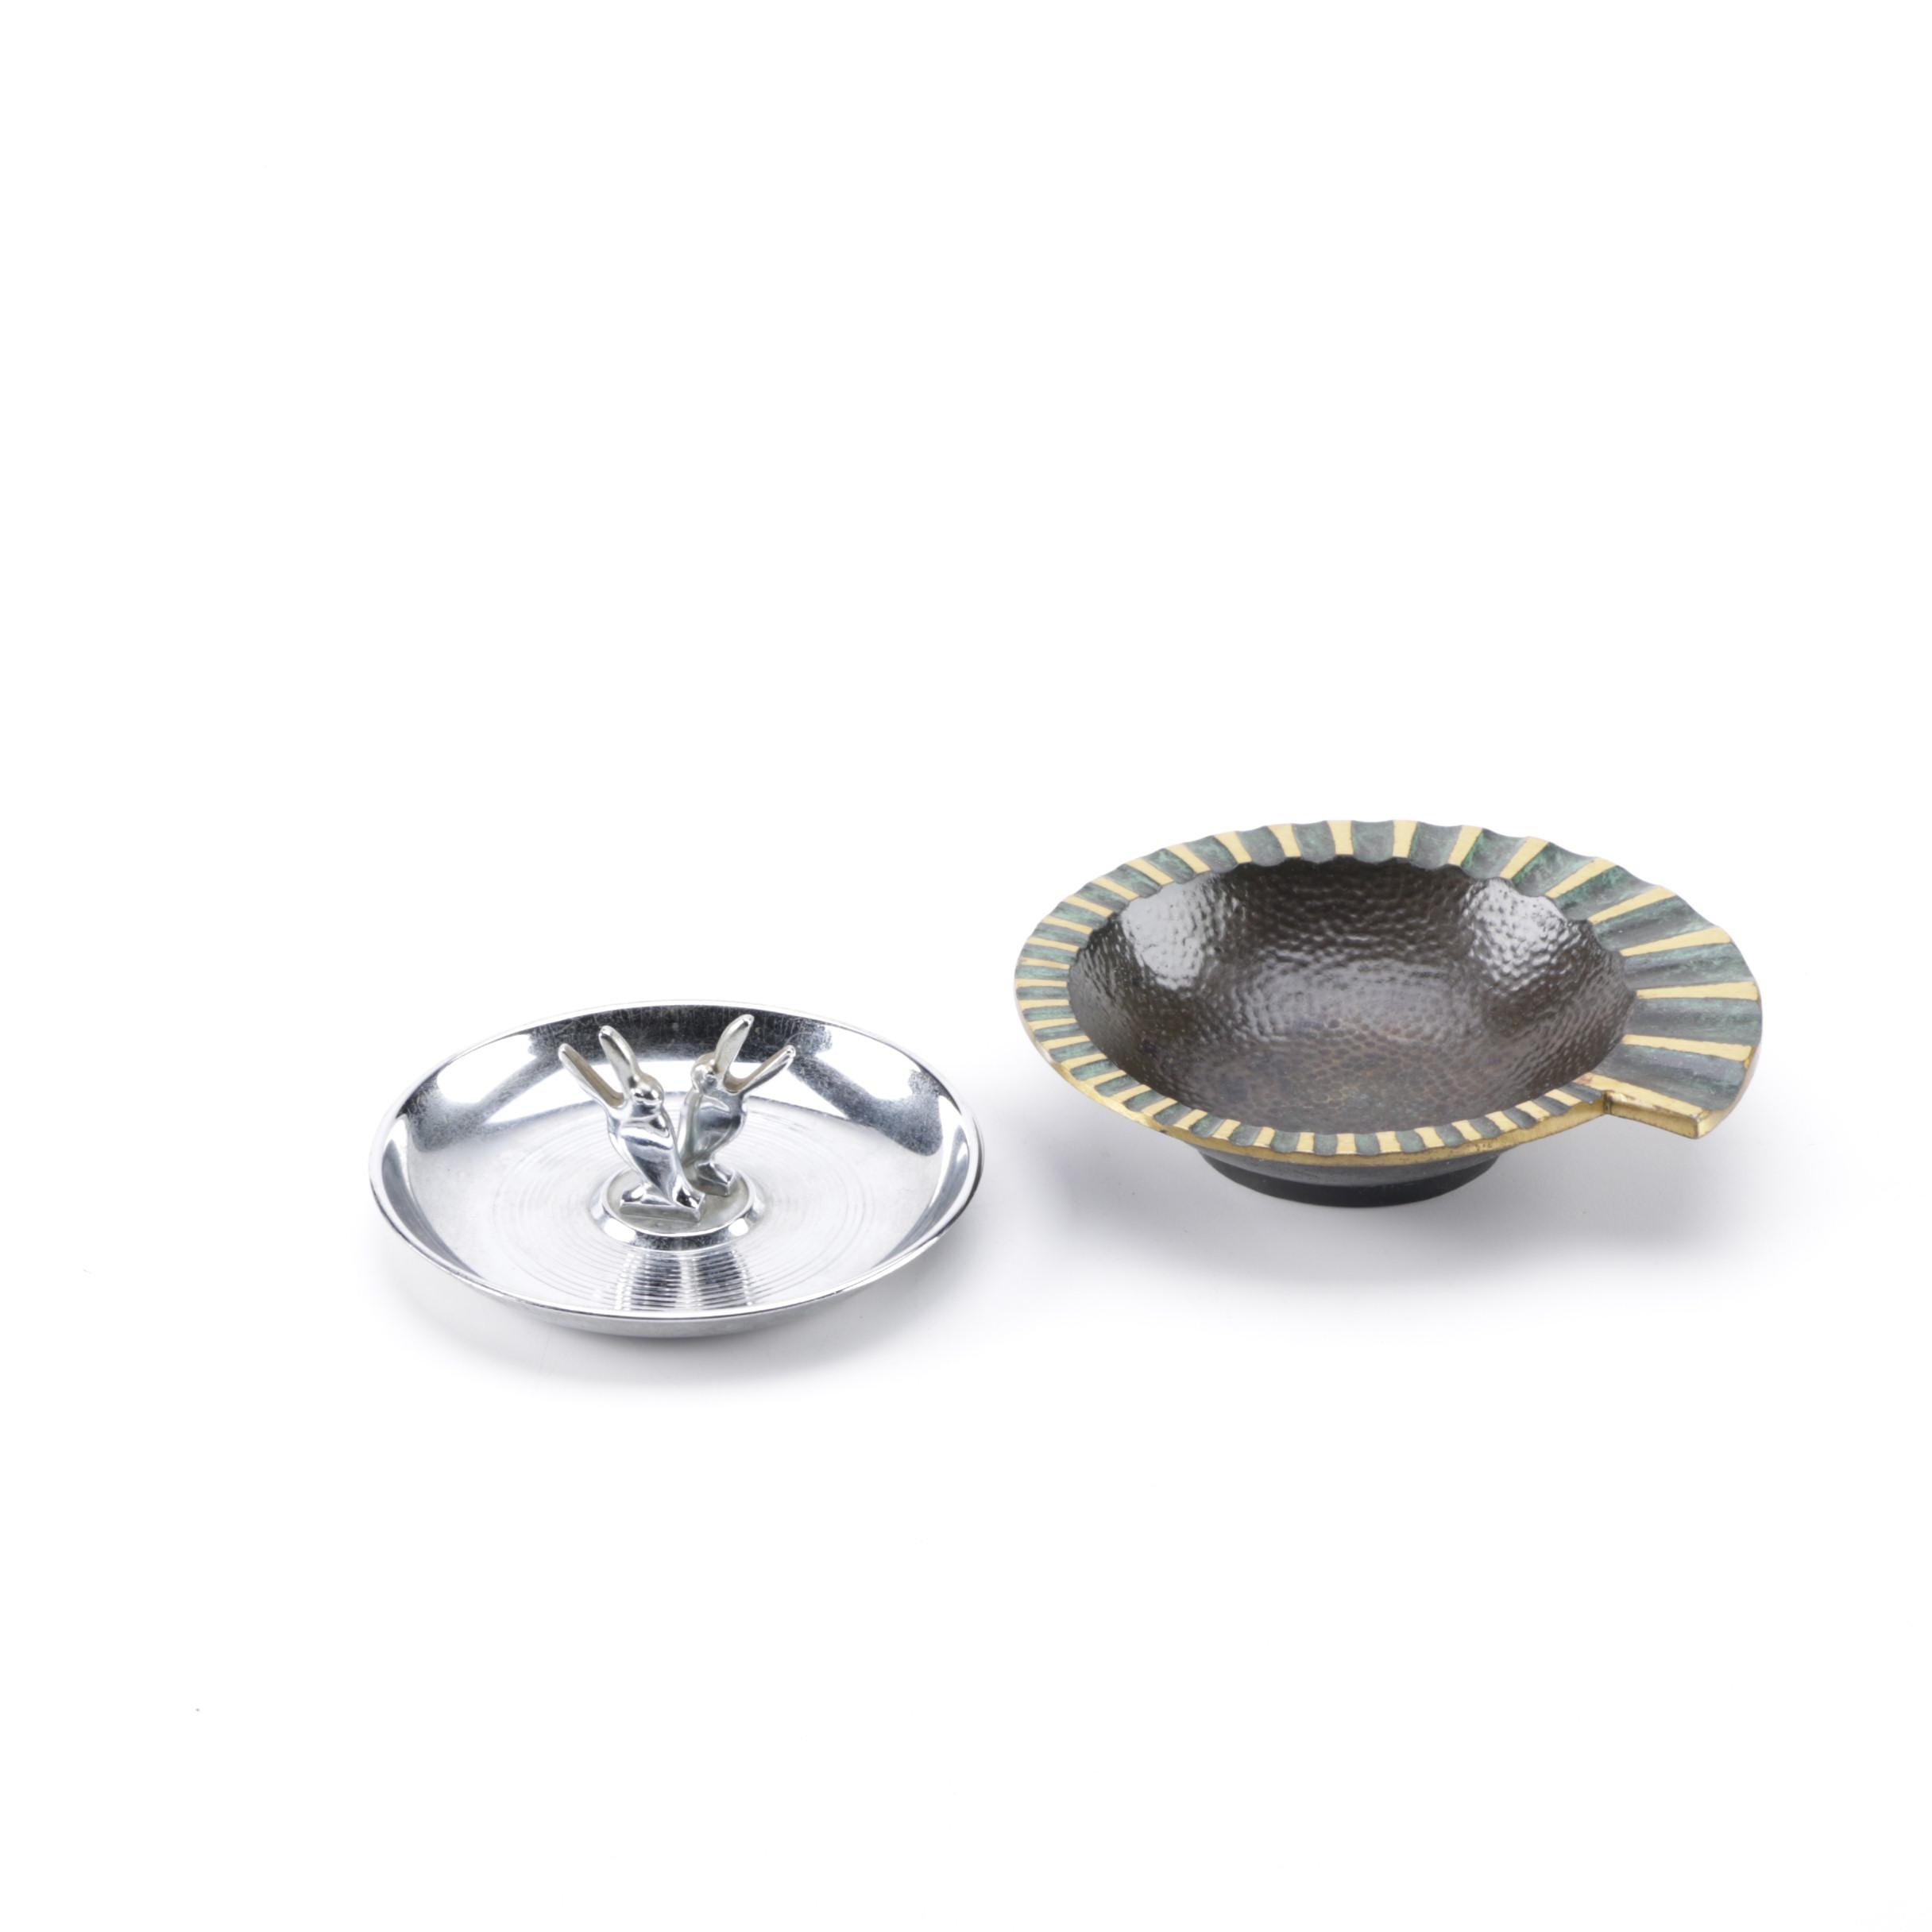 Vintage Pincherette Toucan and Metal Mollusk Ashtrays